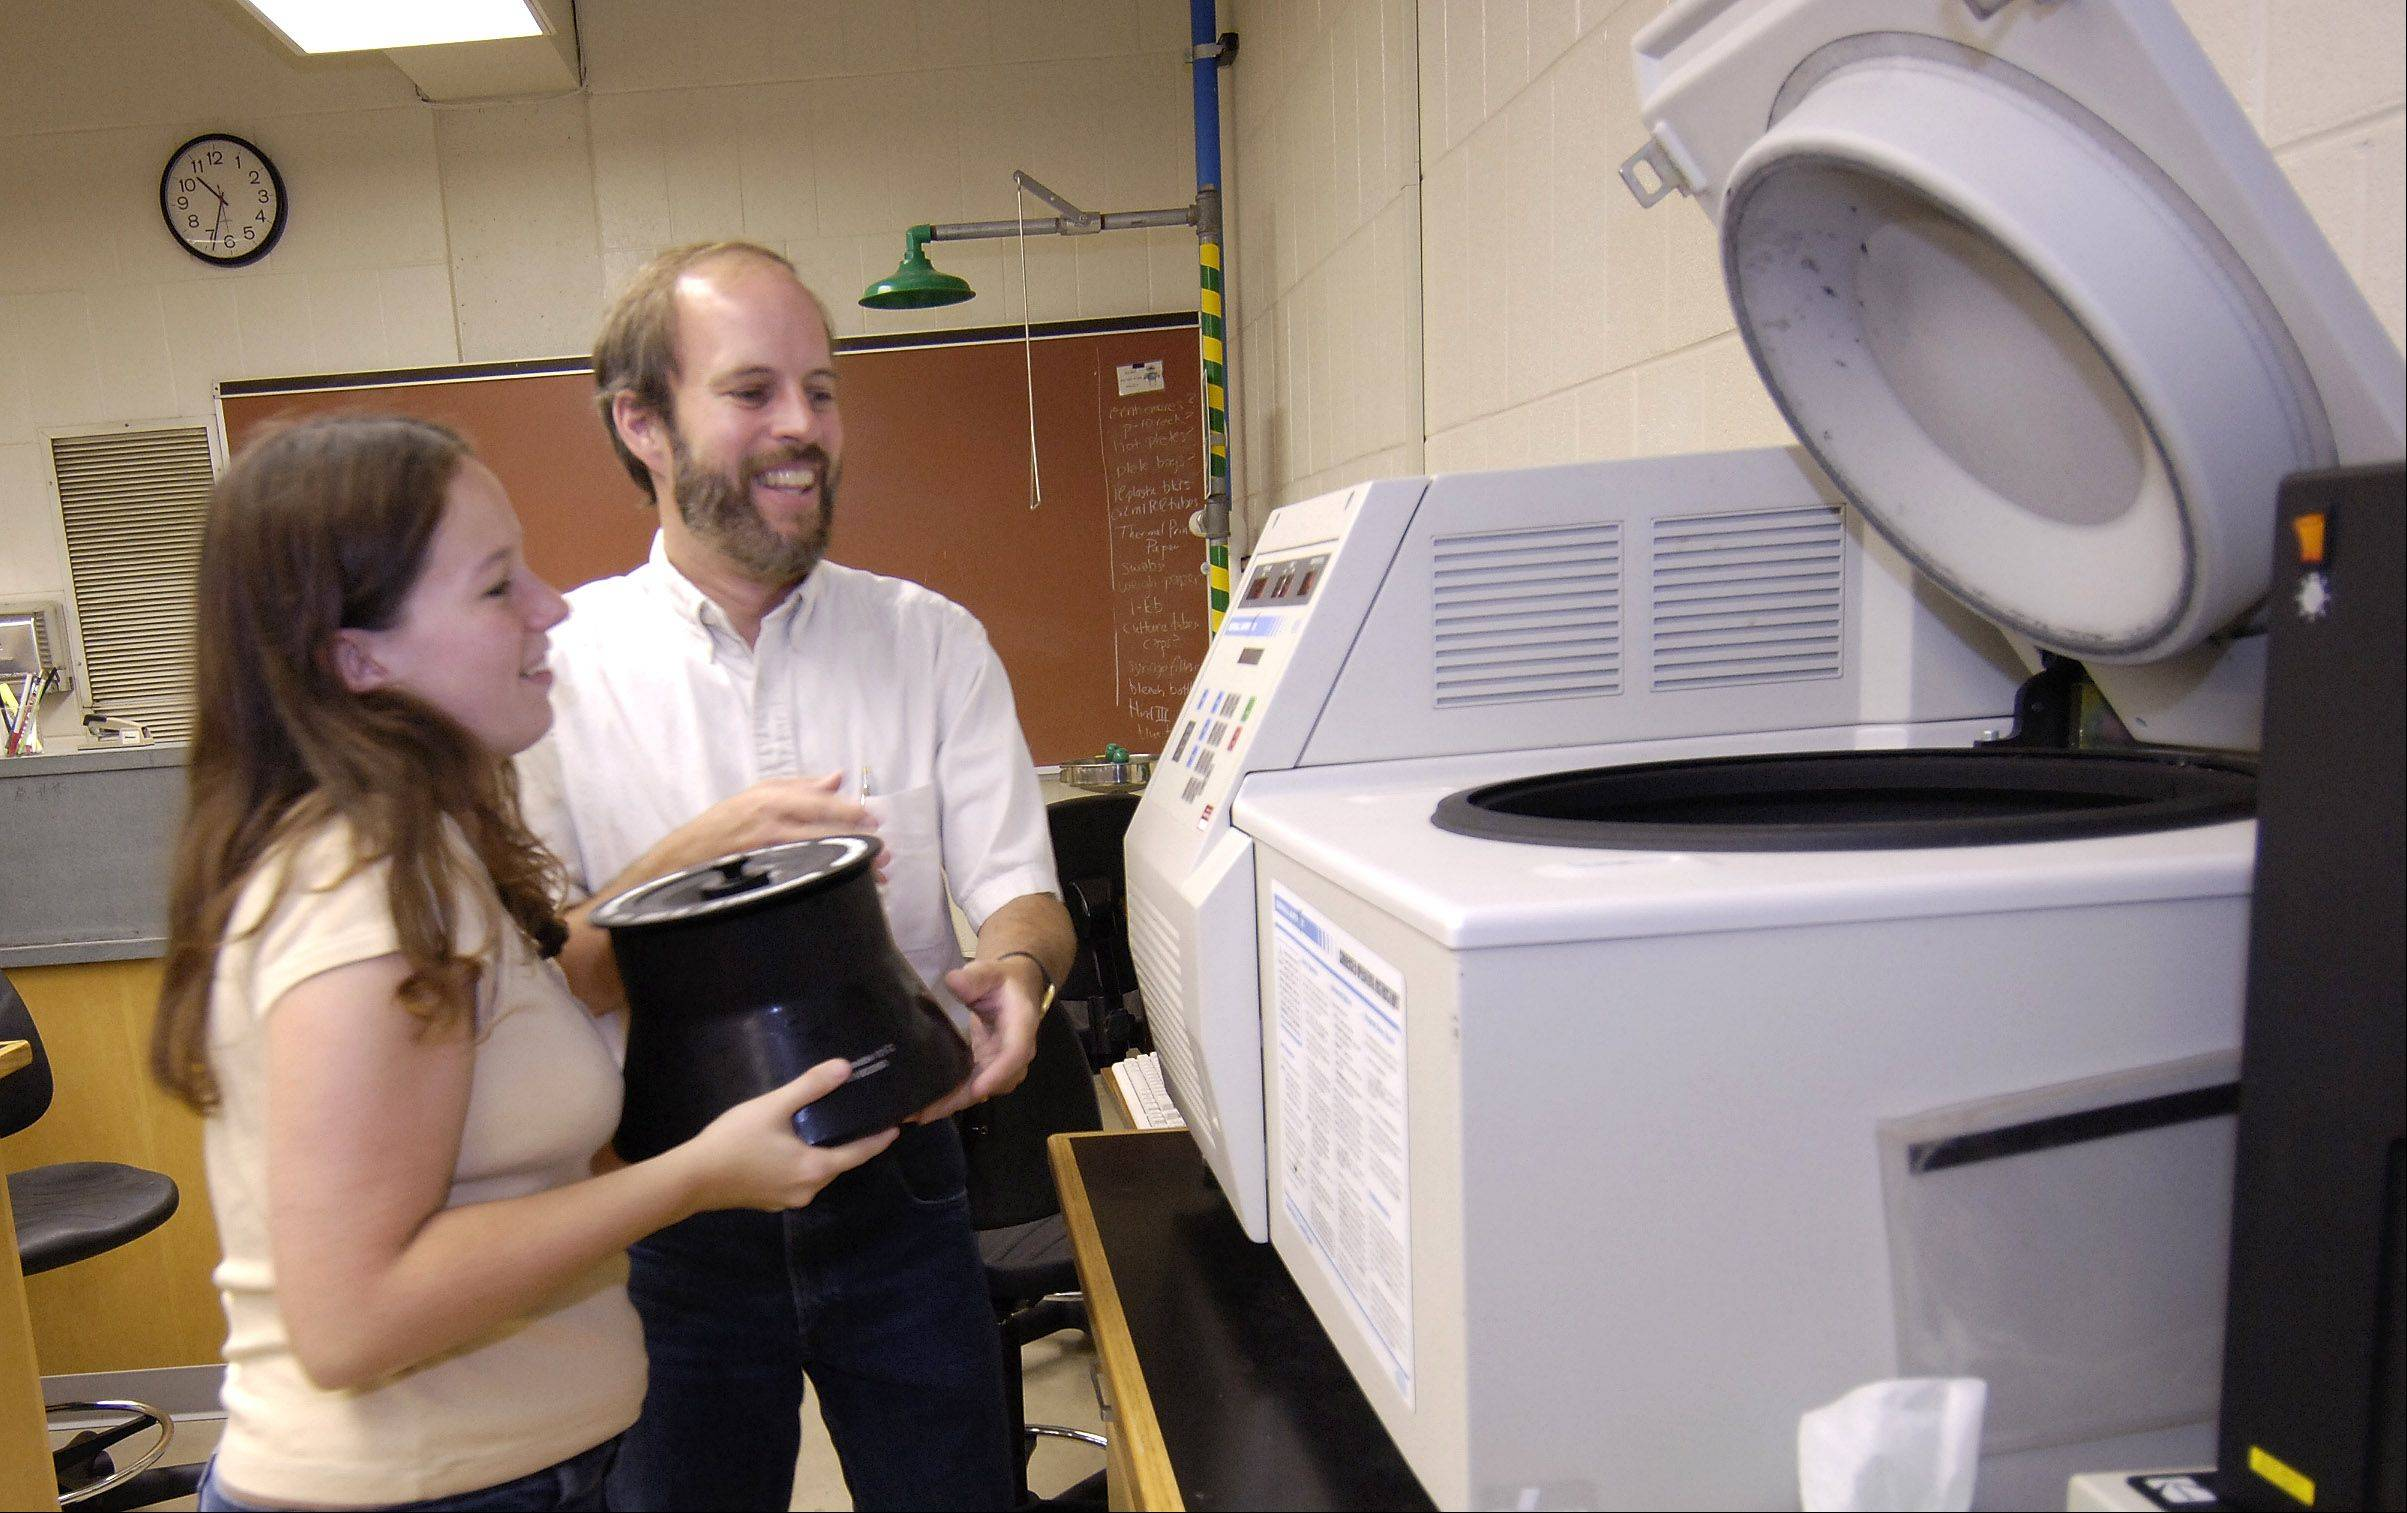 Daily Herald/2005NCC junior Nicole Flinn, left, and Jon Visick, Assistant Biology Professor, lift a rotor into a Centrifuge in the Genetics & Microbiology lab at the Science Center in Naperville.